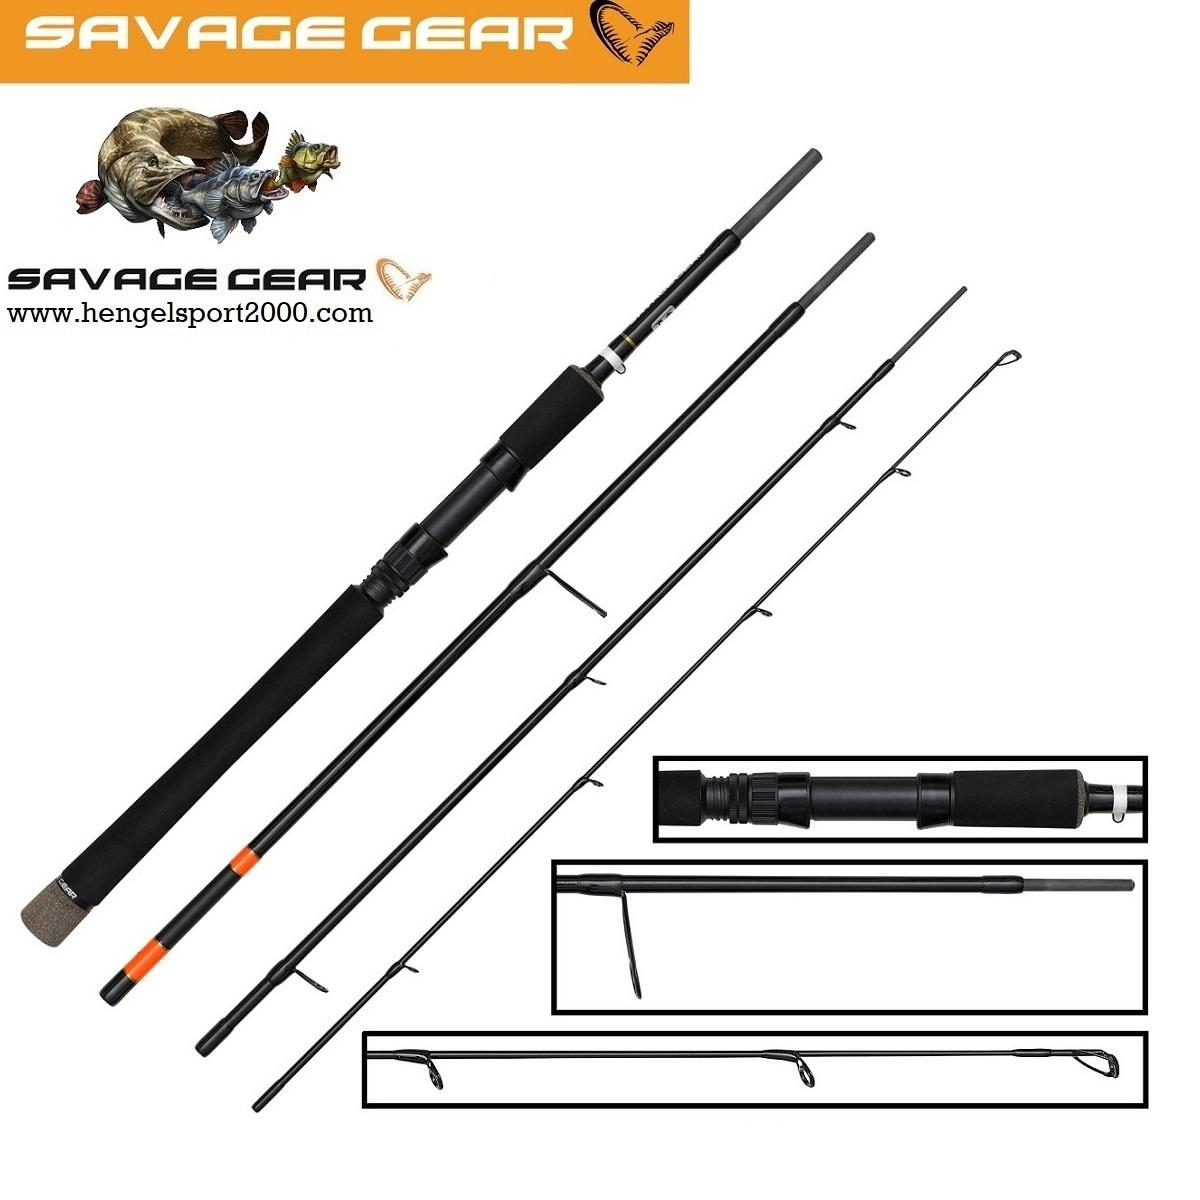 Savage Gear Multi Purpose Predator2 Travel  213cm 10 - 40 gram